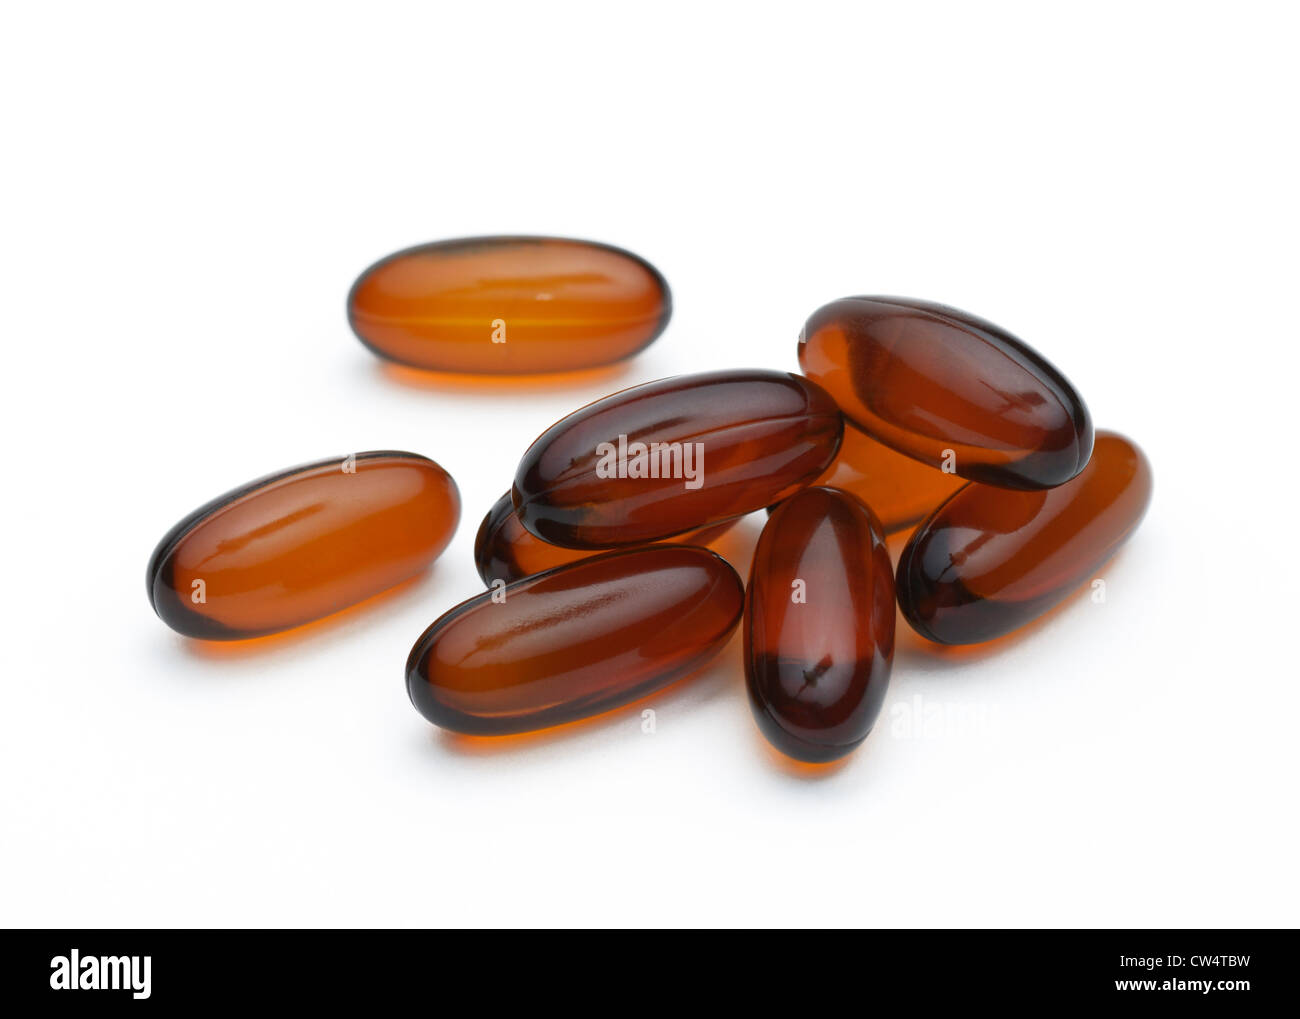 Flaxseed oil pills, a nutritional source of omega-3 and omega-6 fatty acids - Stock Image